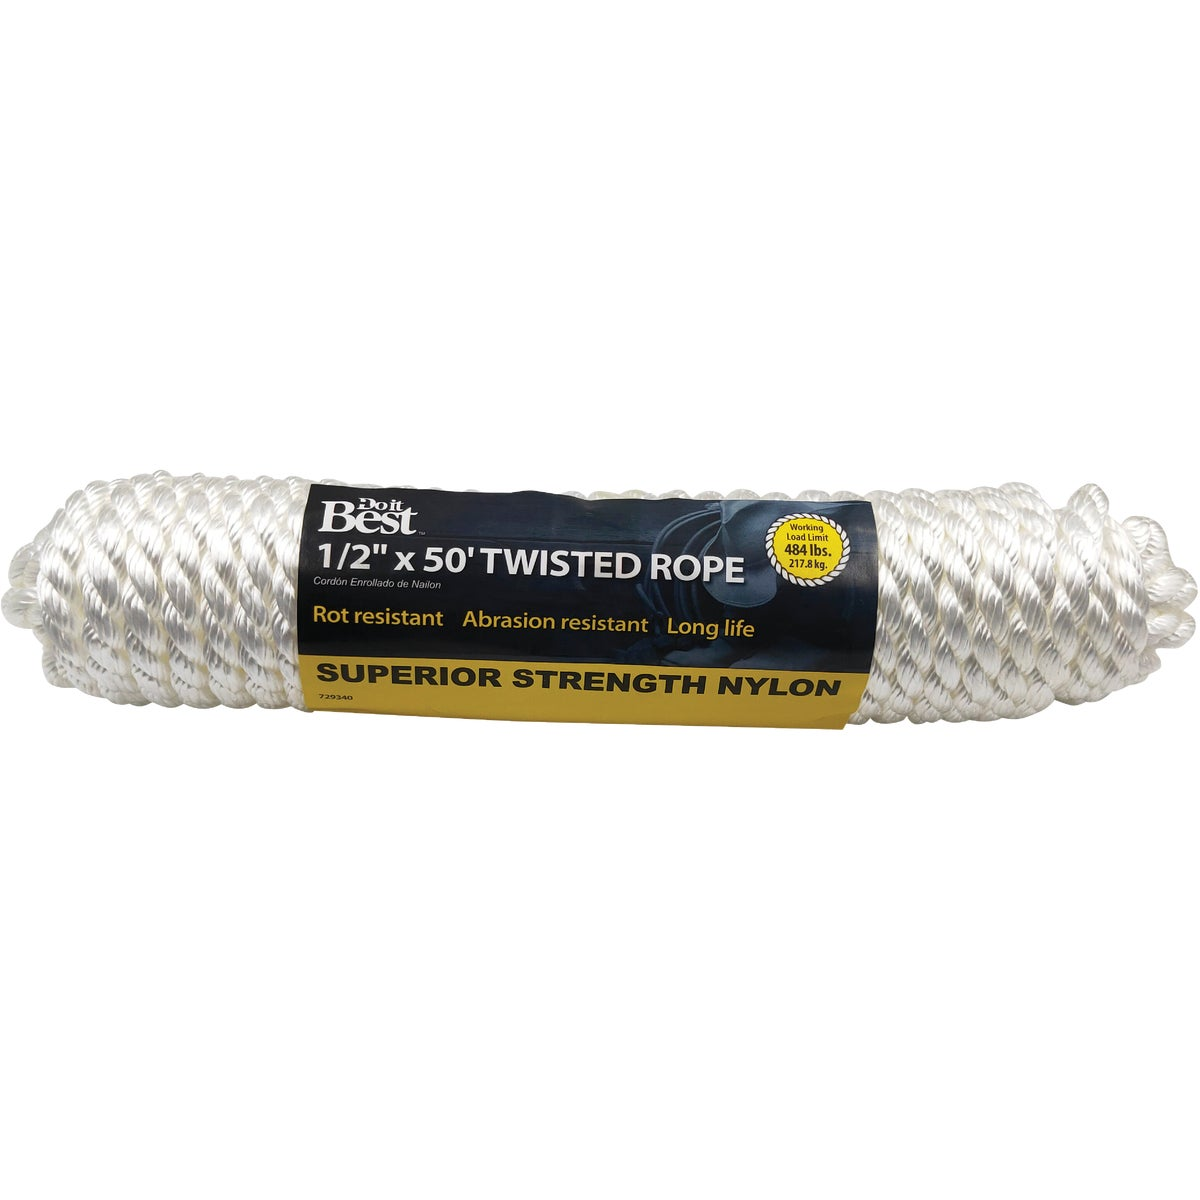 "1/2""X50' NYL TWIST ROPE - 729340 by Do it Best"